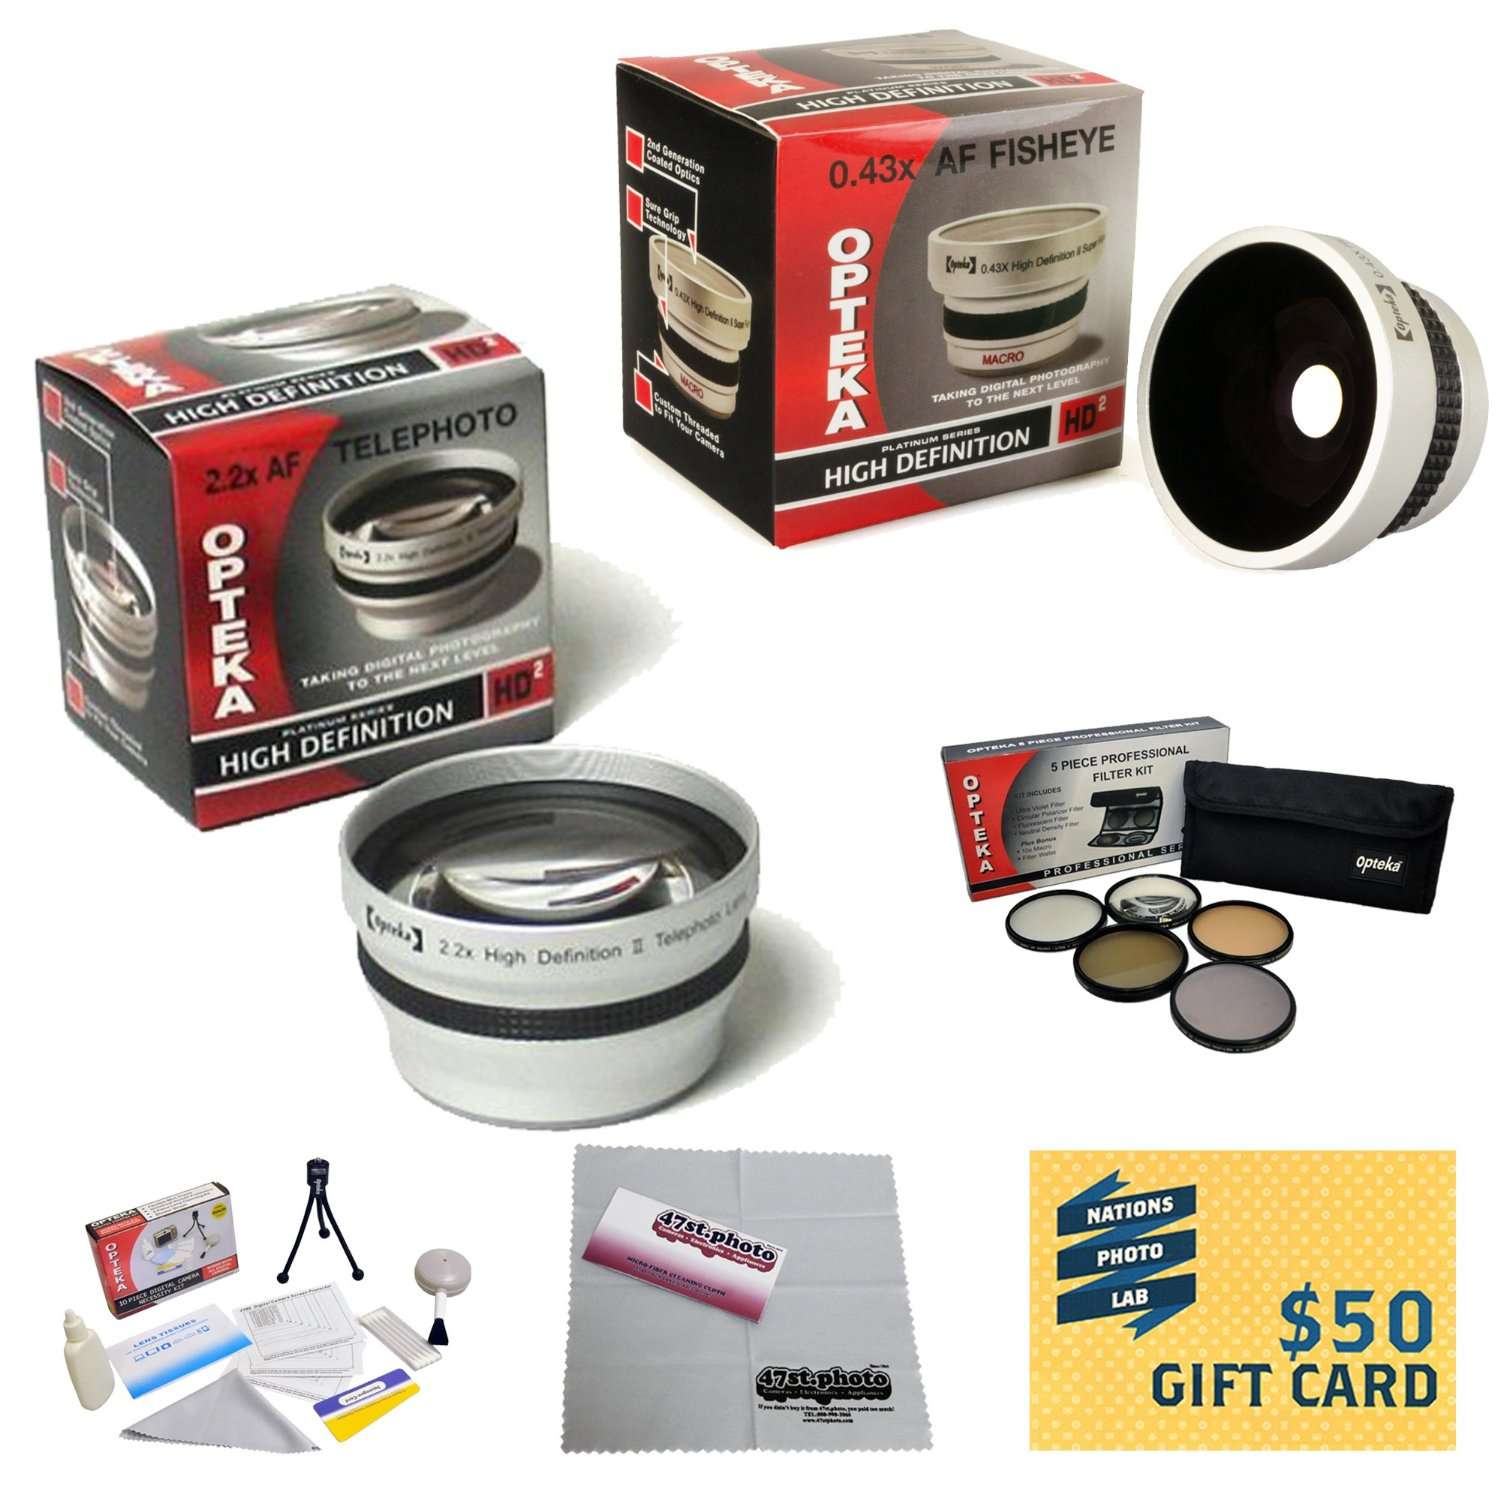 Click here to buy 10 Piece Ultimate Lens Package For JVC GZ-HD300, HD320, HM200, HM400, GZ- MG630, MG670, MG680, MS120, MS130,... by Opteka.